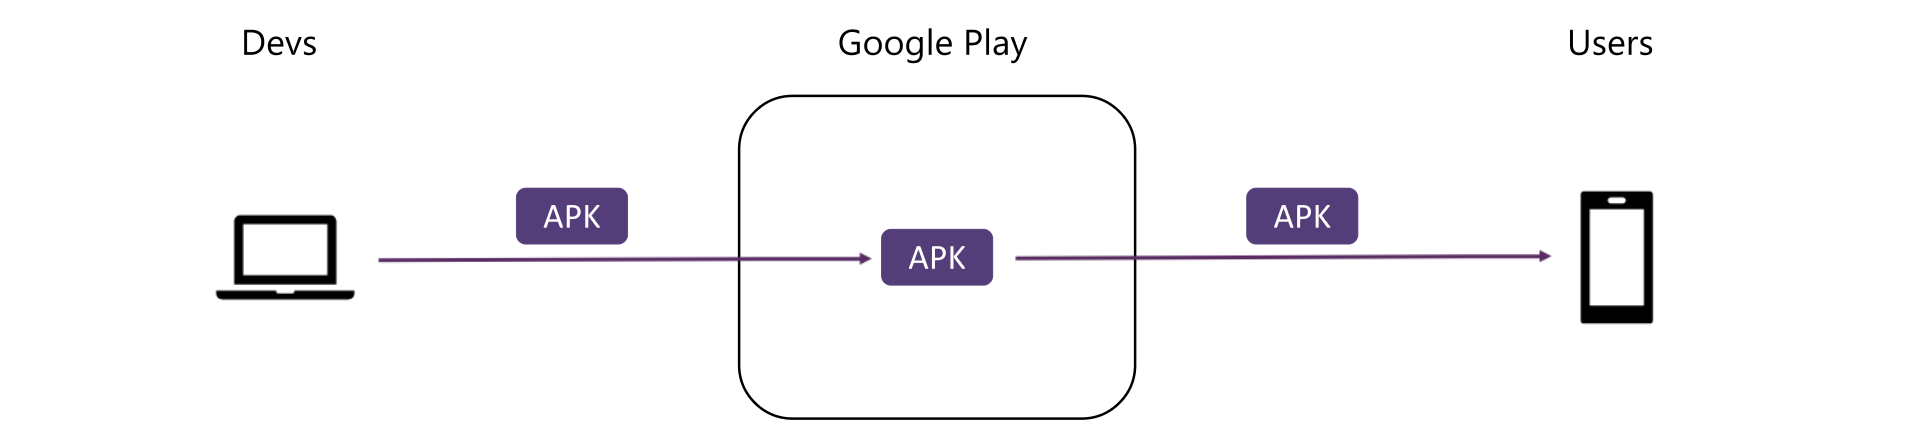 Diagram showing single APK distribution